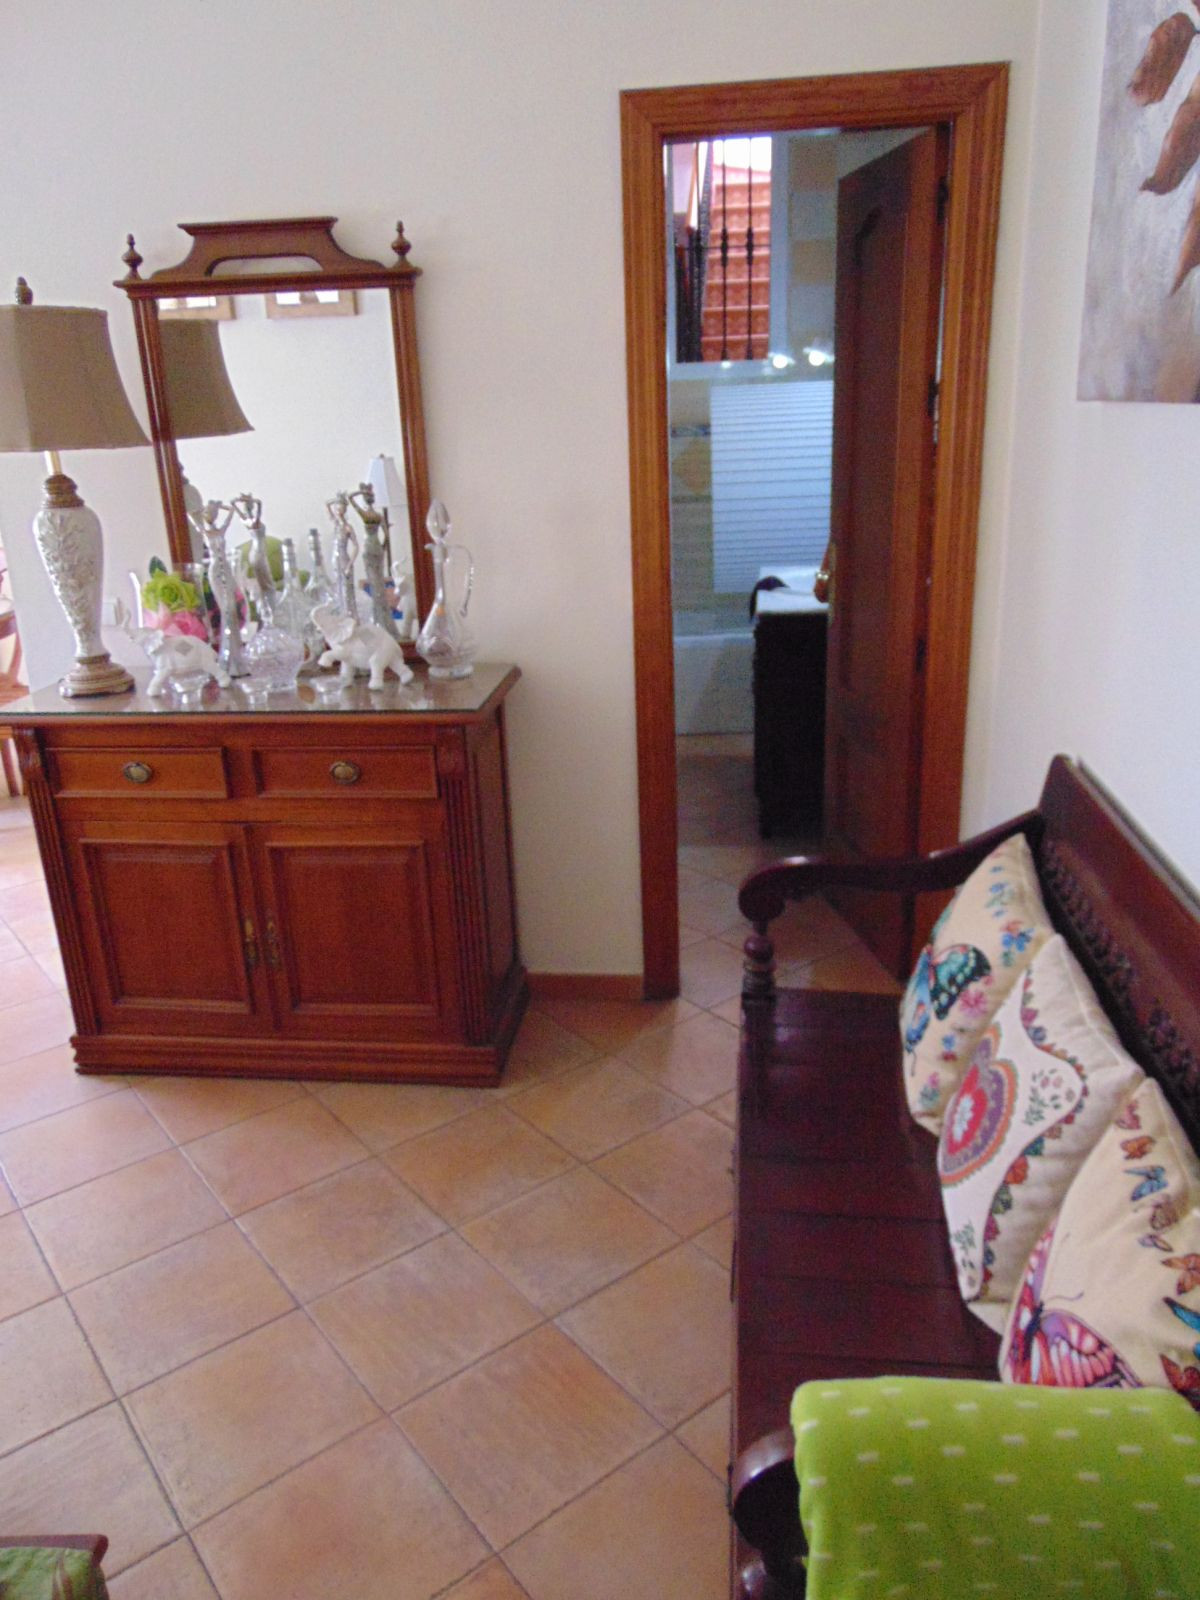 3 Bedroom Penthouse Apartment For Sale Alhaurín el Grande